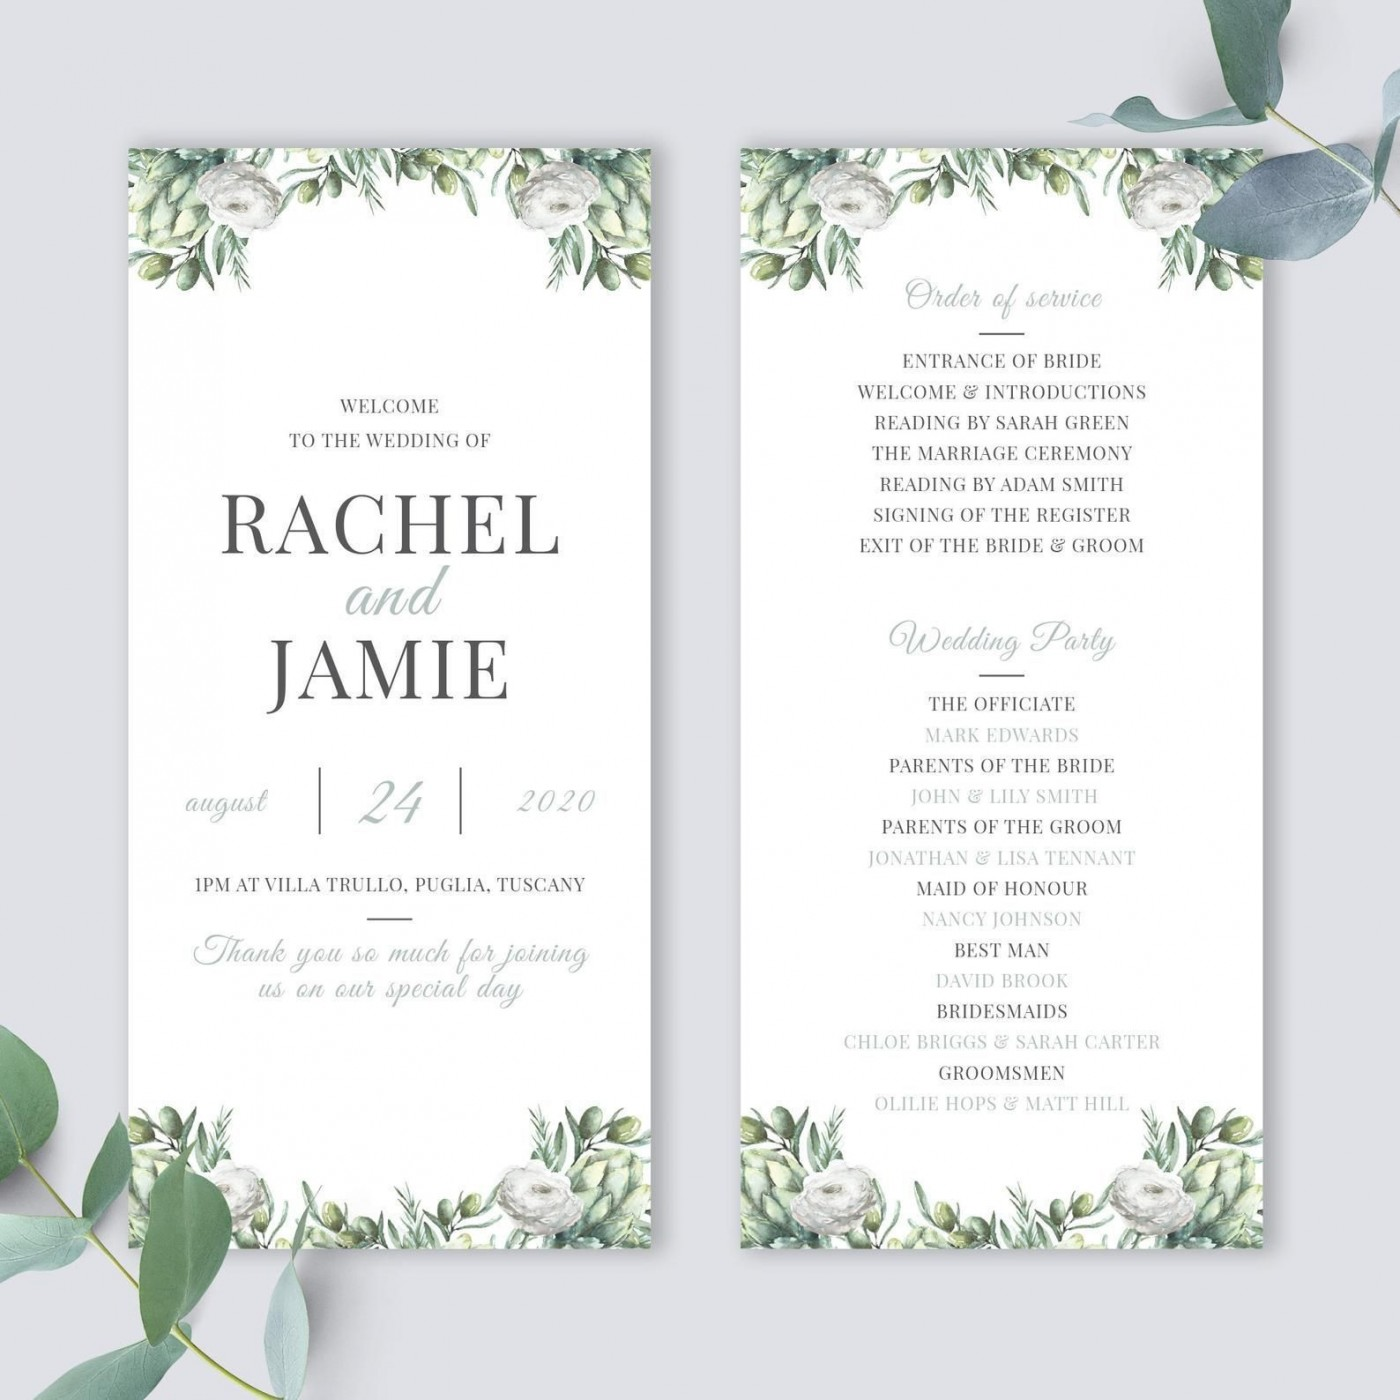 010 Awful Wedding Order Of Service Template Free Picture  Front Cover Download Church1400